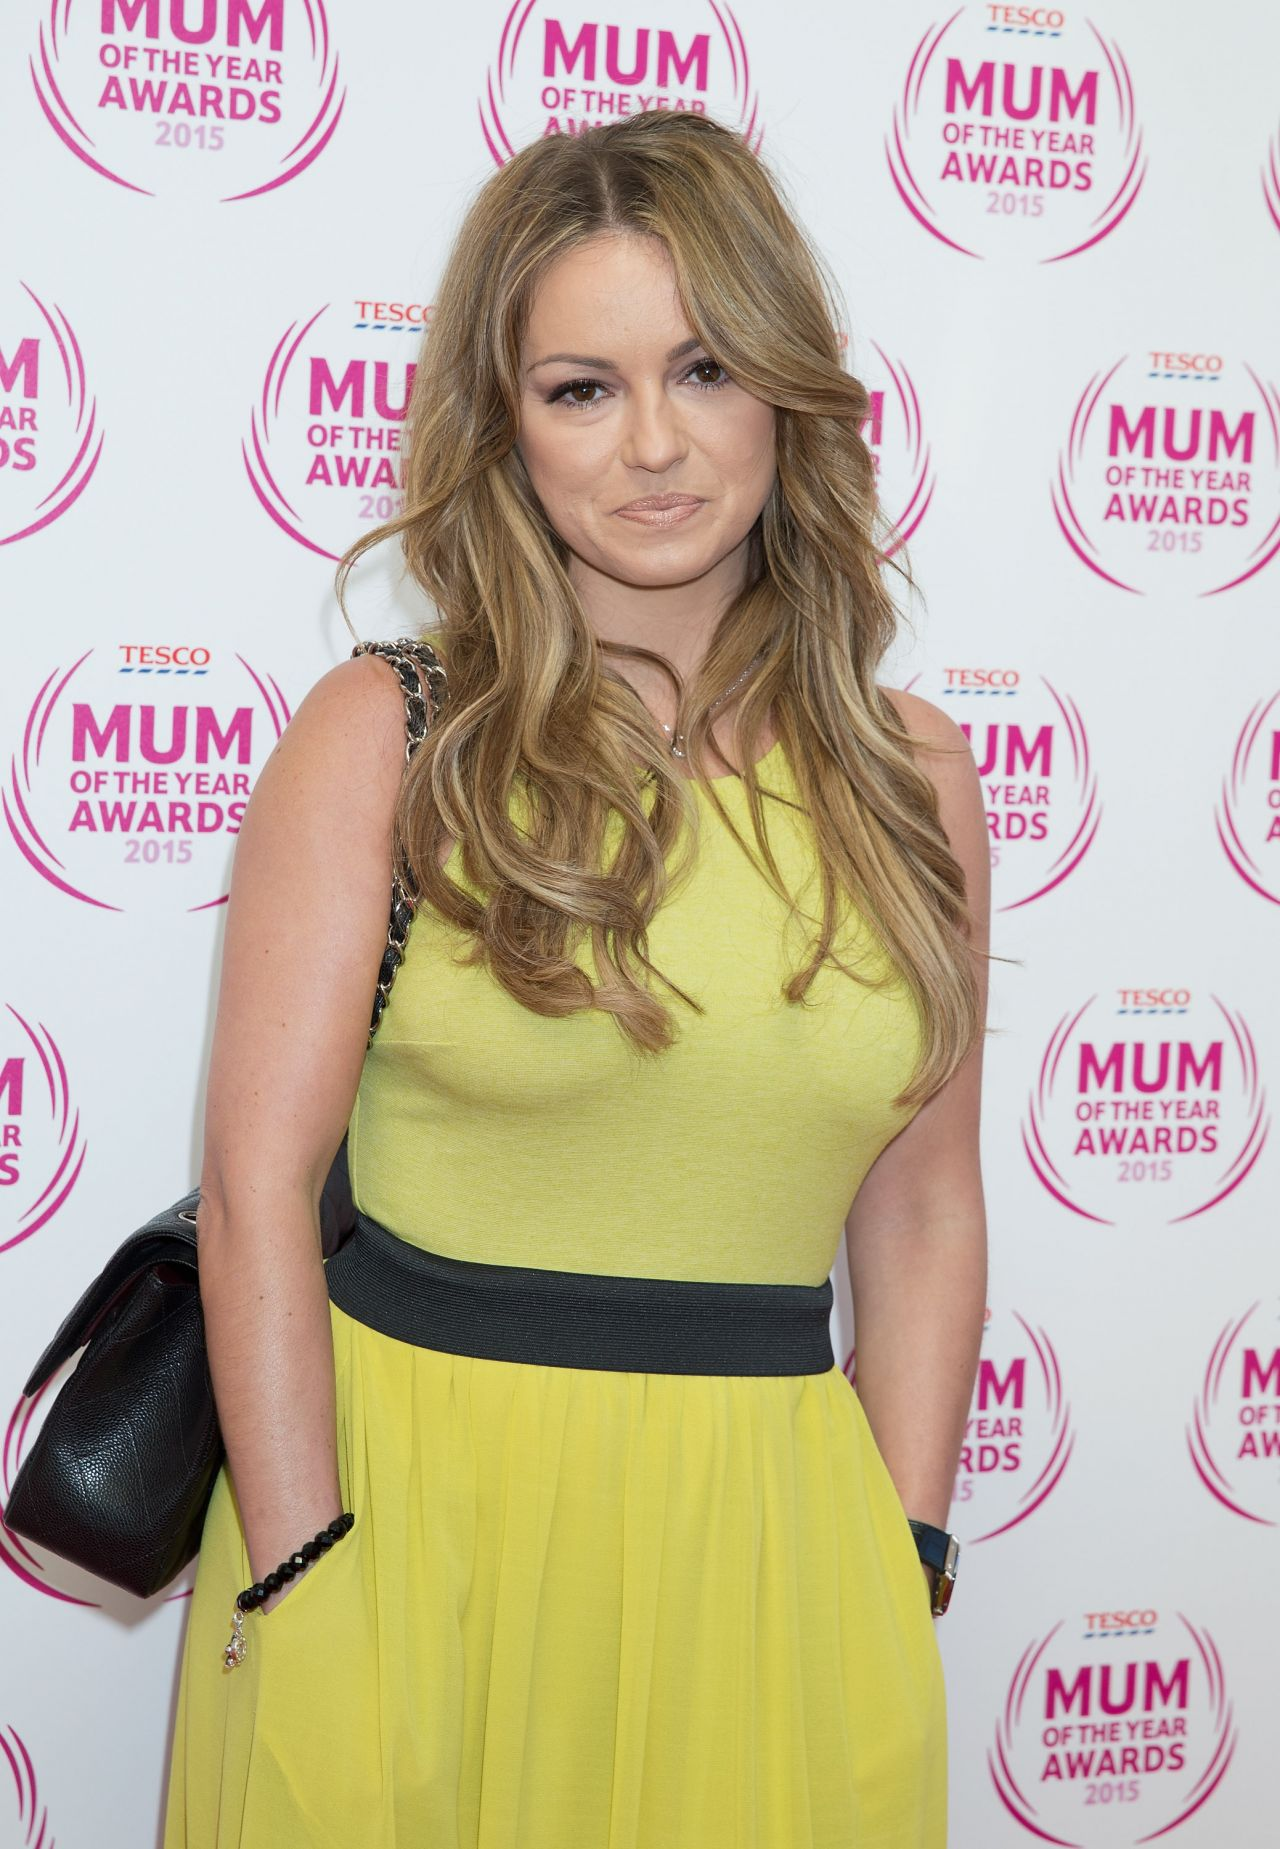 Ola Jordan - 2015 Tesco Mum Of The Year Awards in London